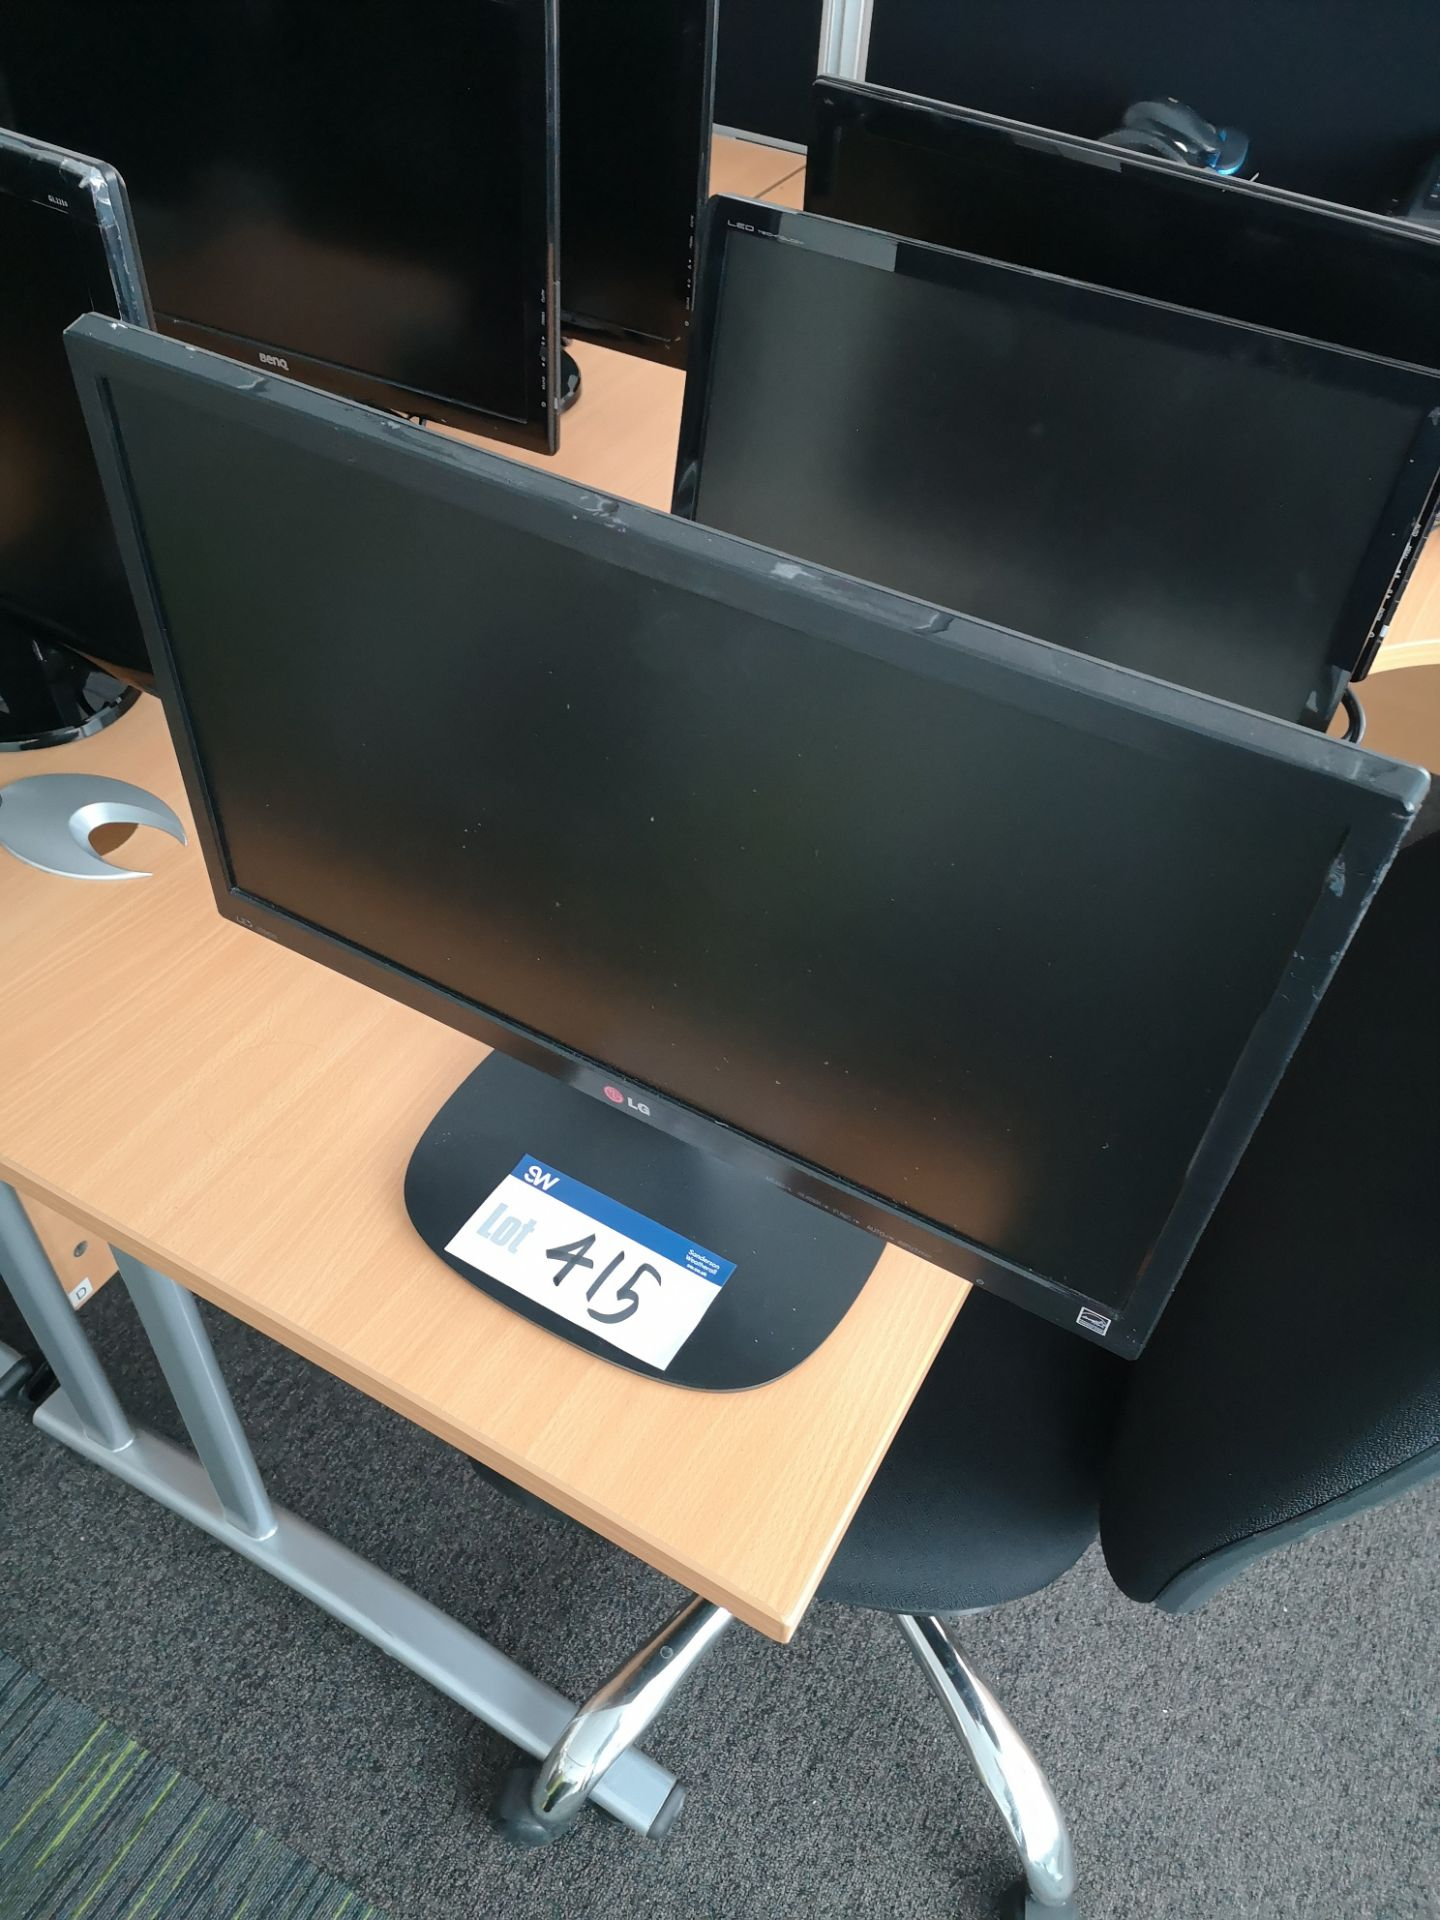 Lot 415 - LG 22M36A-B Monitor (LOT LOCATED AT 8 WHITEHOUSE S